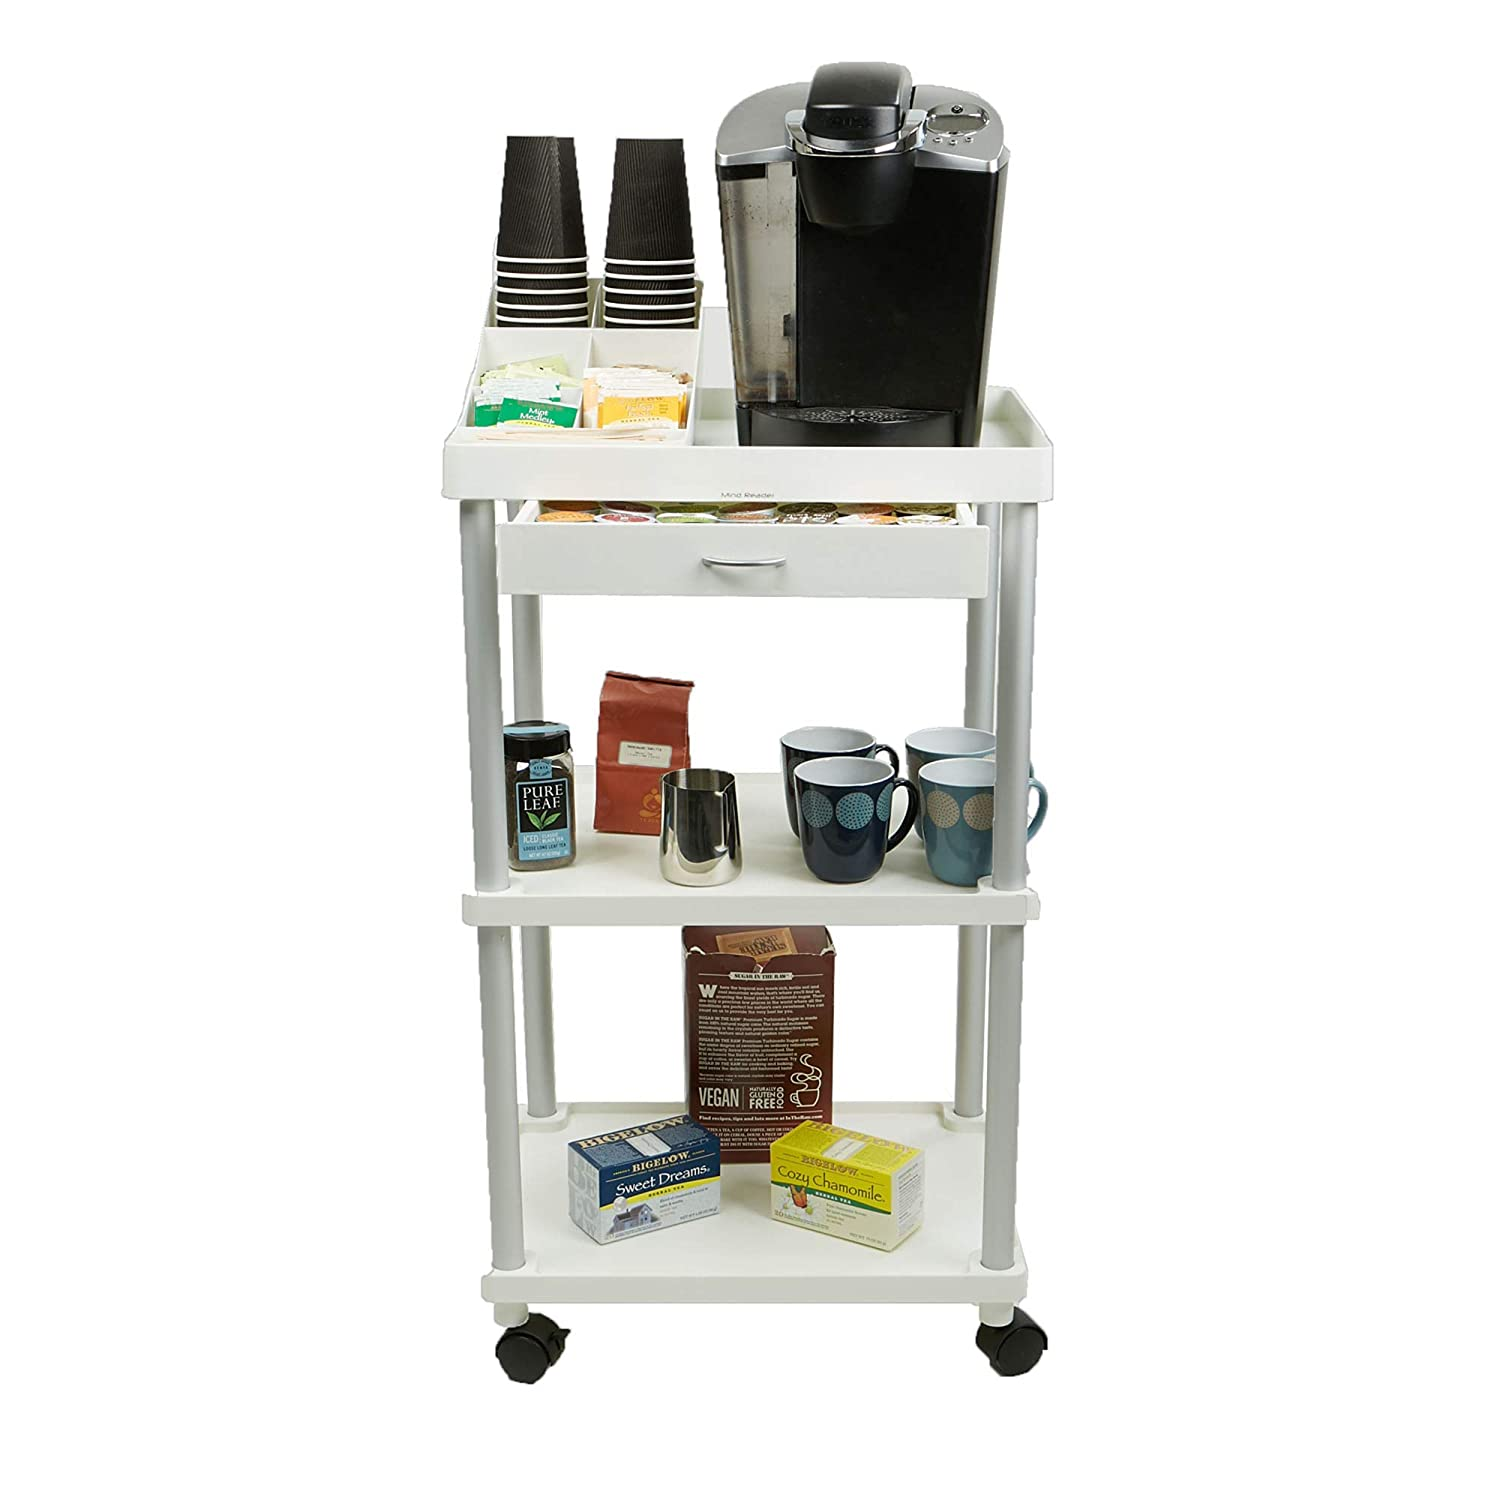 Office coffee cart Coffee Stand Amazoncom Mind Reader All Purpose Rolling Cart Printer Cart Utility Cart Kitchen Cart Coffee Cart Microwave Cart Bathroom Cart Tier Amazoncom Amazoncom Mind Reader All Purpose Rolling Cart Printer Cart